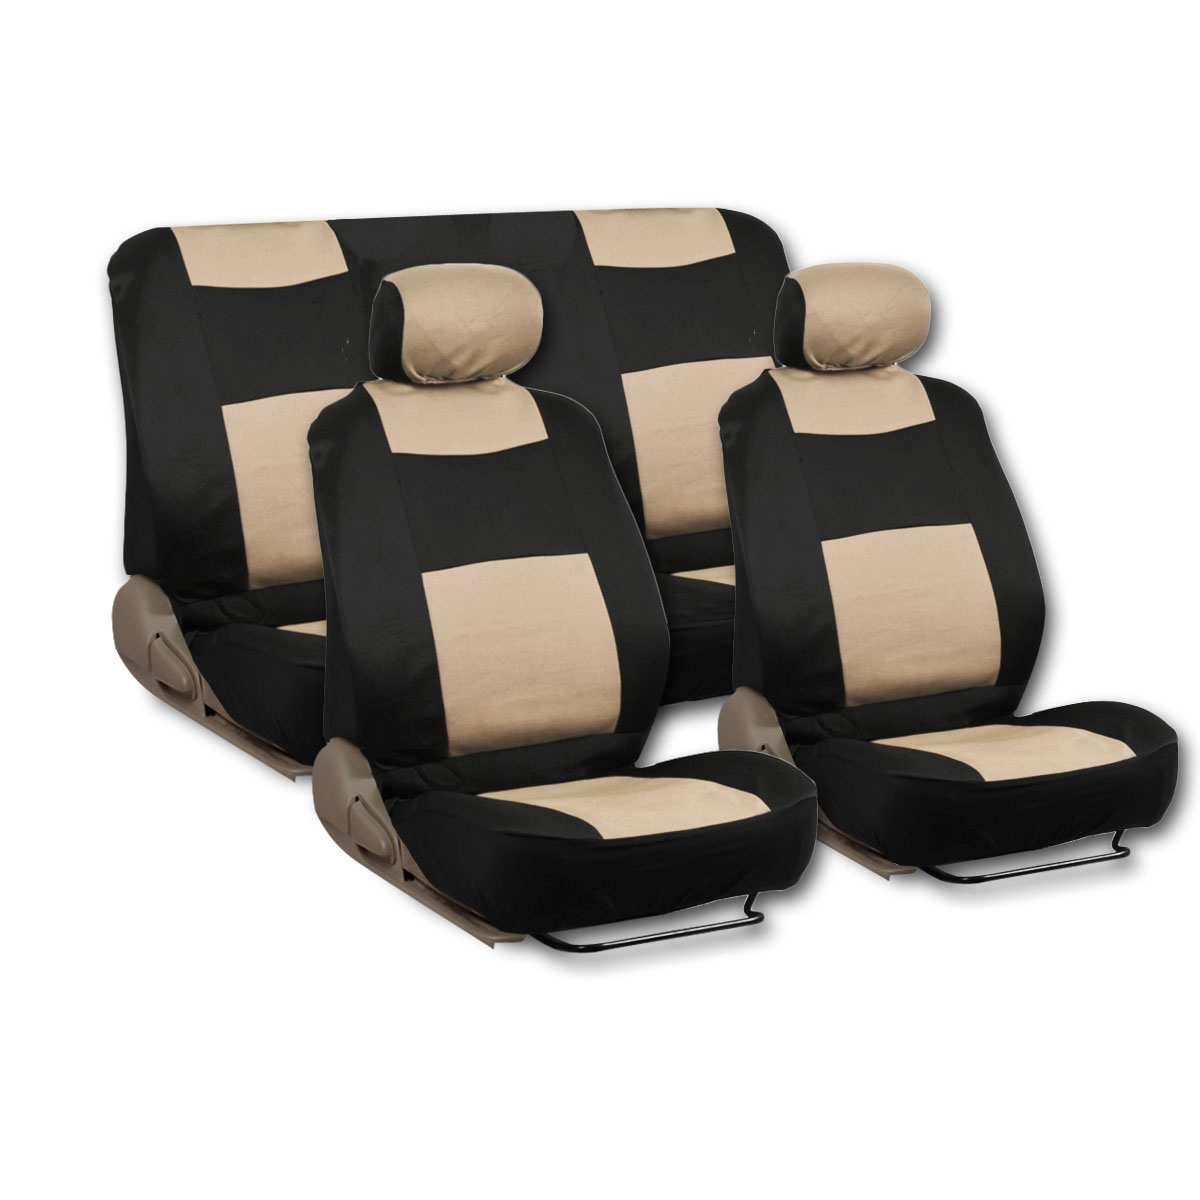 11 Piece Car Truck Seat Cover: Beige Type-R 9 Piece Front Car Seat Rear Bench Head Rest